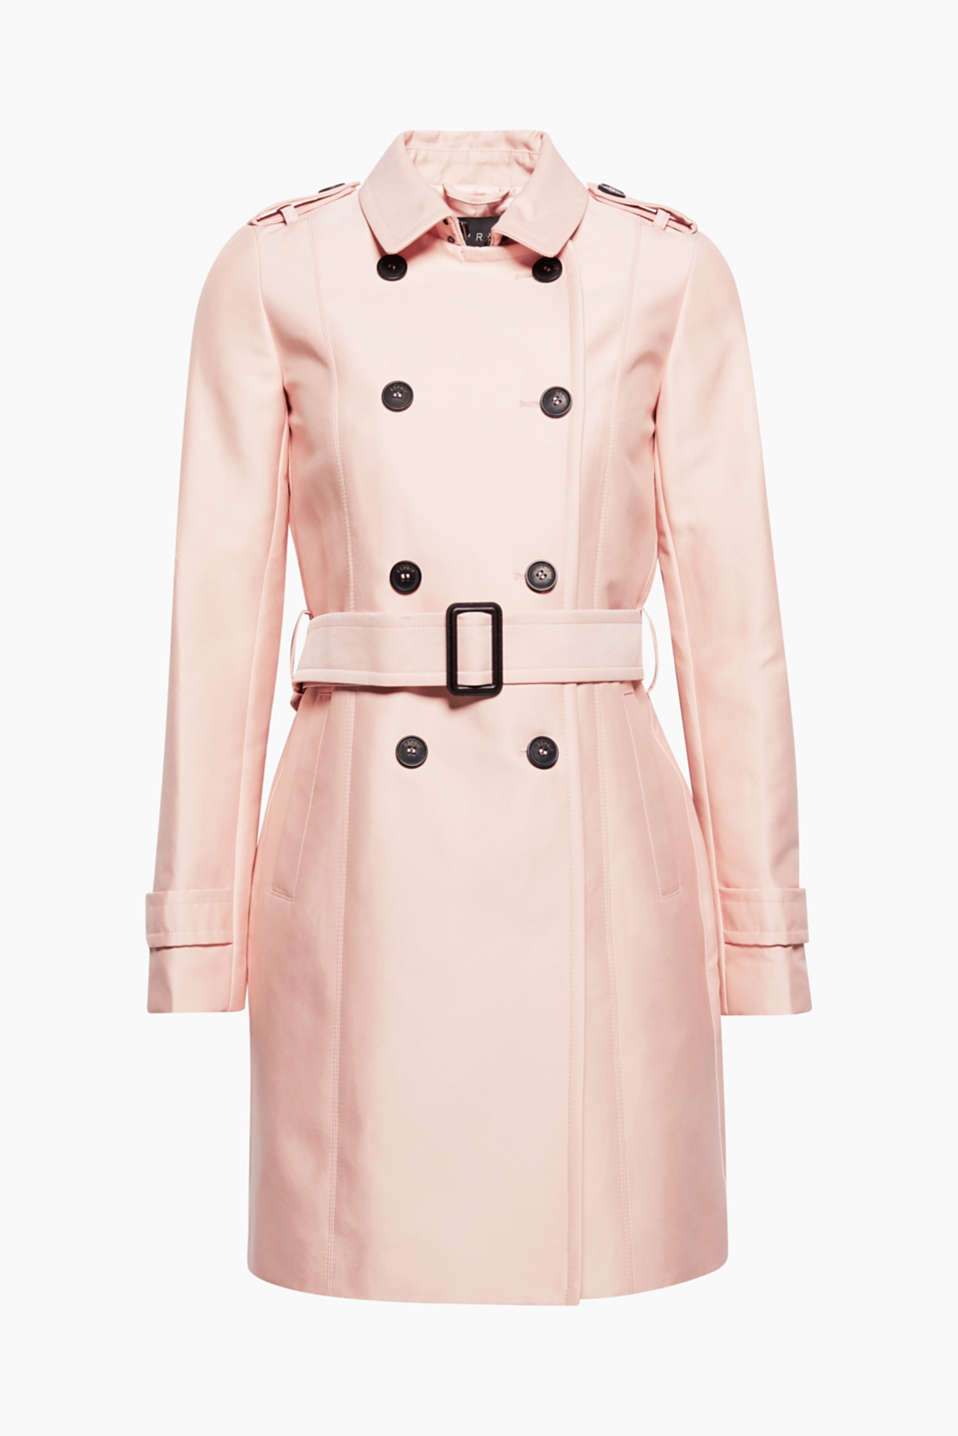 This double-breasted trench coat in a firm cotton blend with silky lining is an indispensable classic!